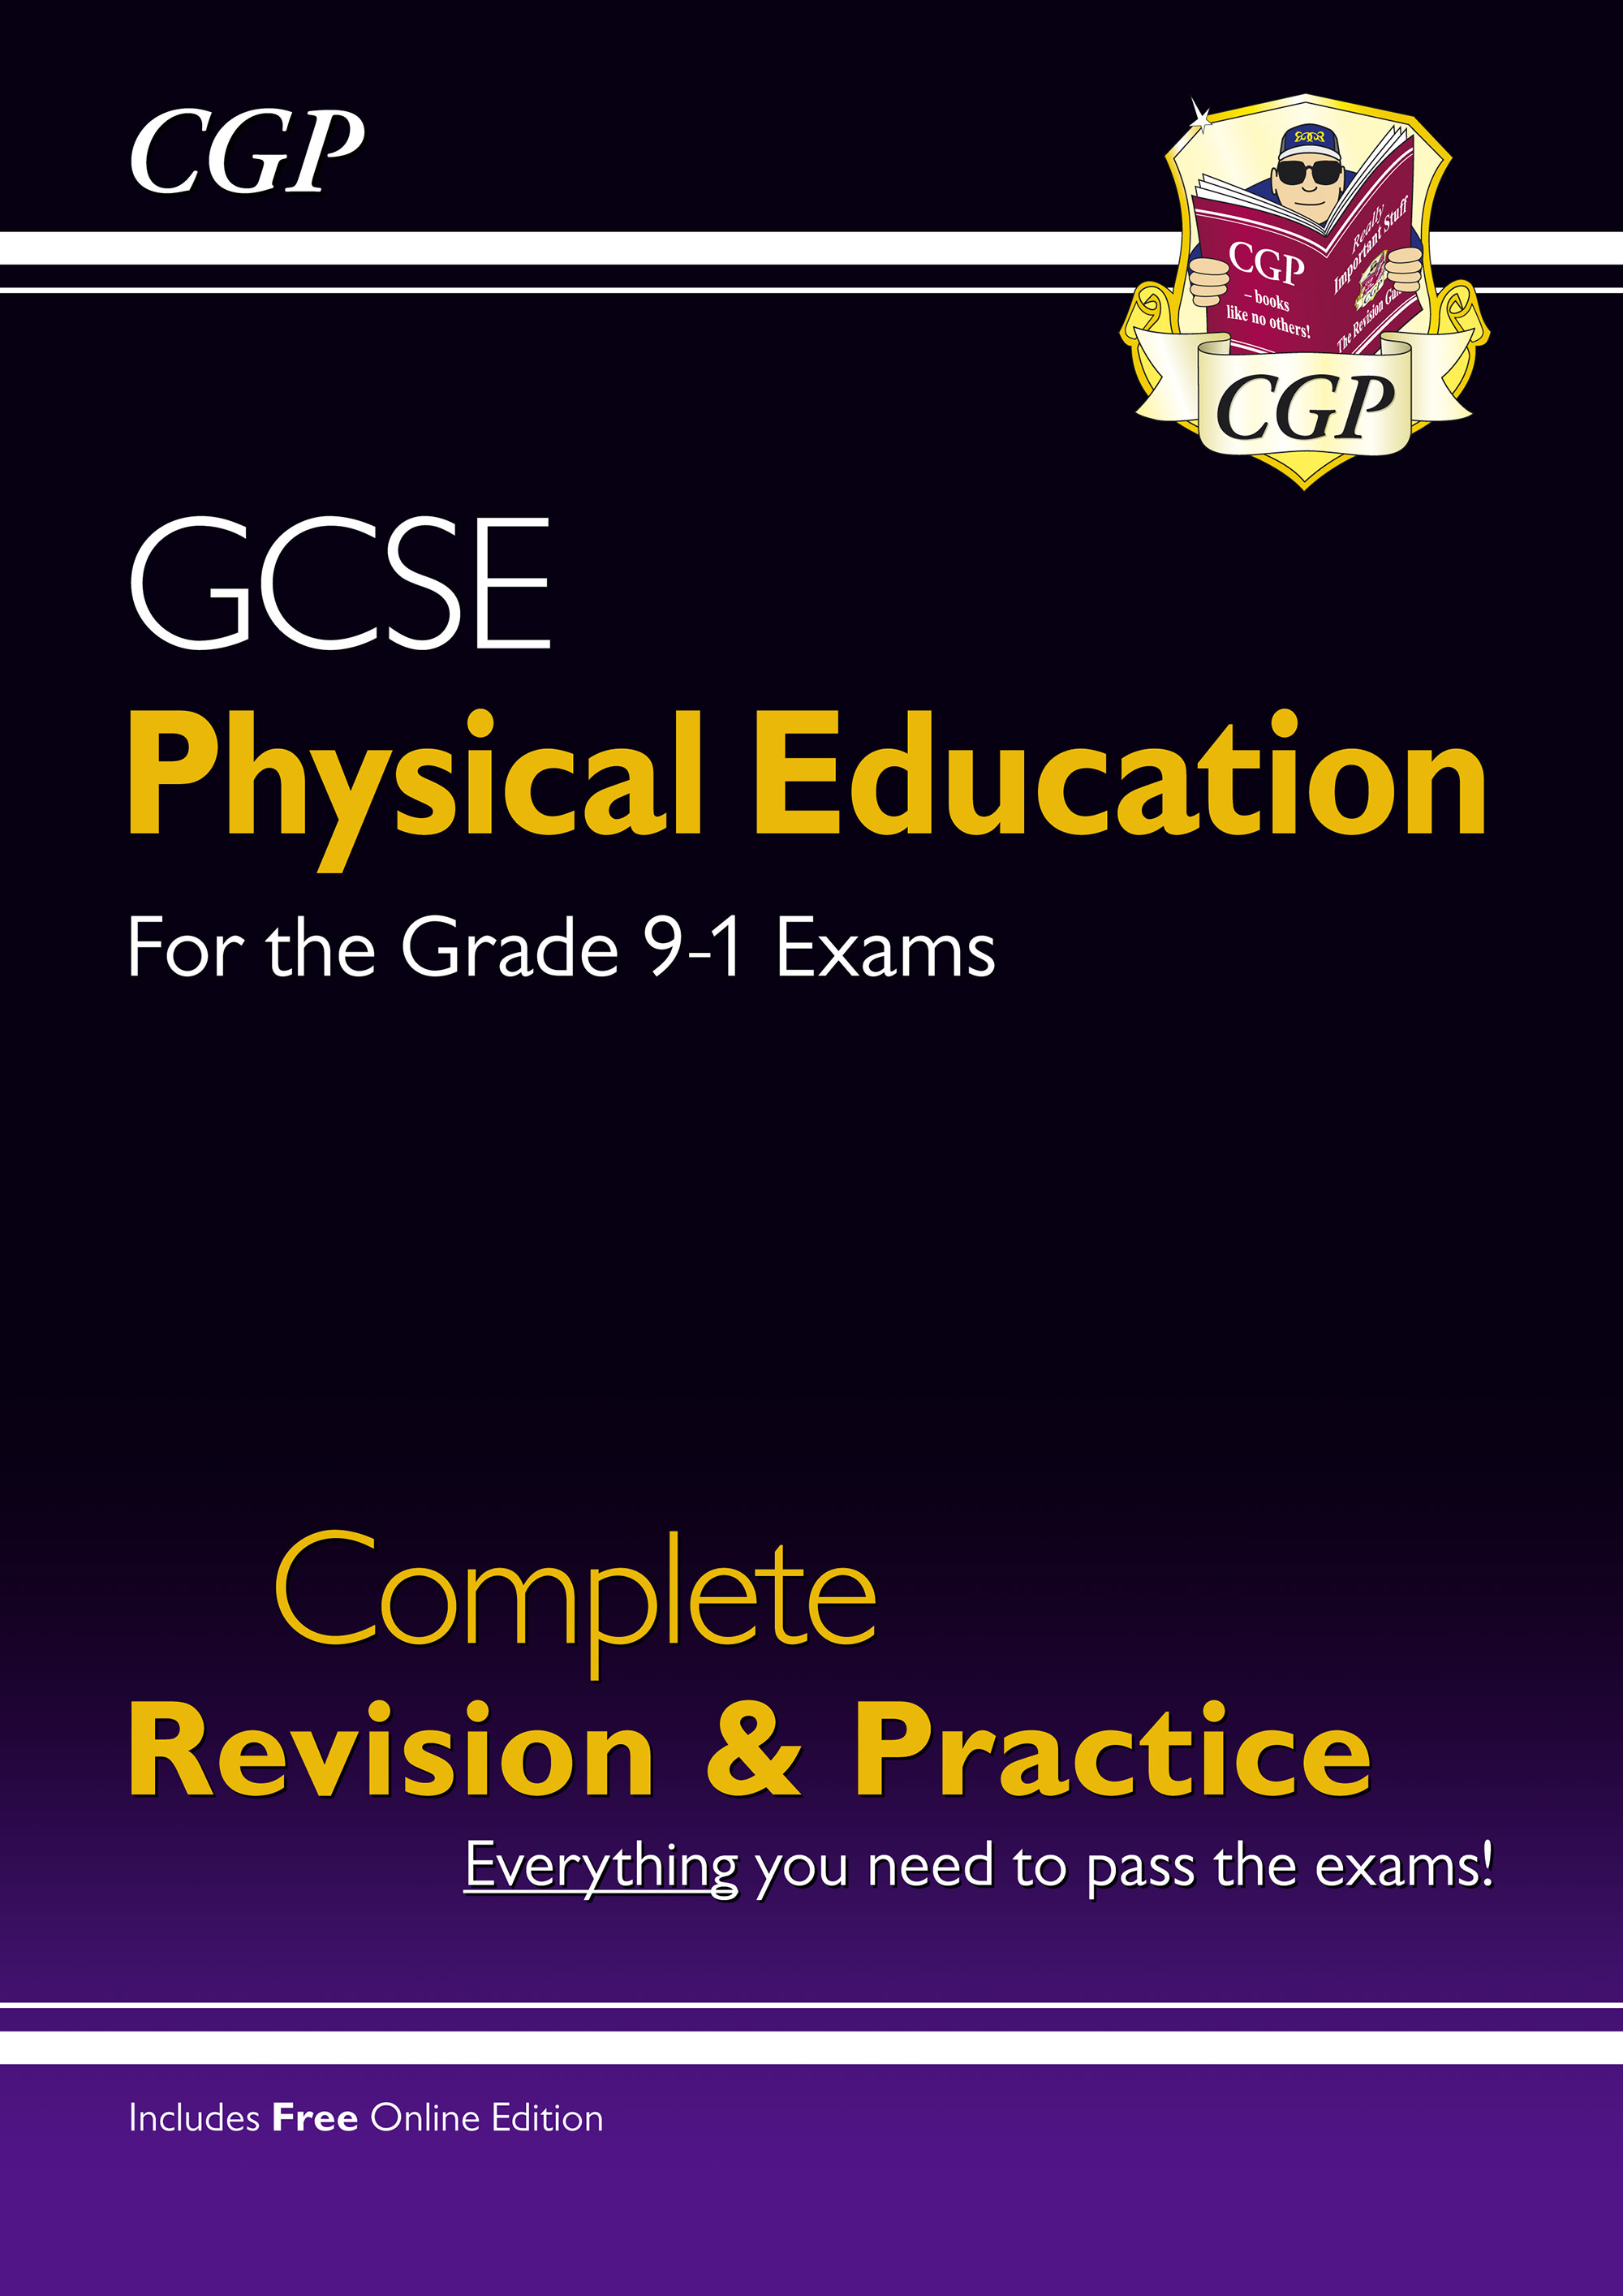 JHS44 - New GCSE Physical Education Complete Revision & Practice - for the Grade 9-1 Course (with On